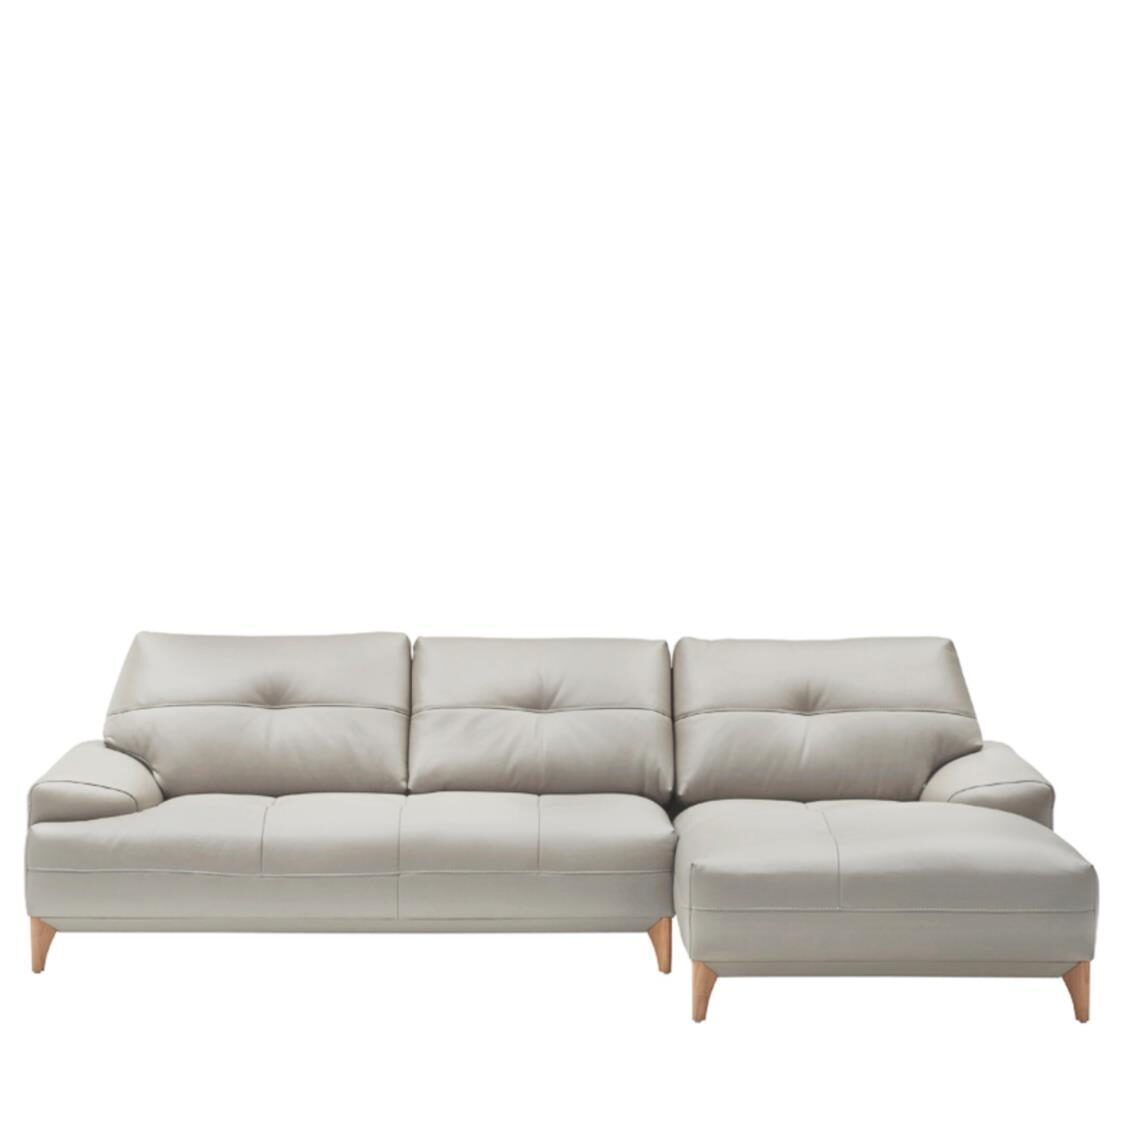 Iloom Boston Leather Couch R L391C Cloud